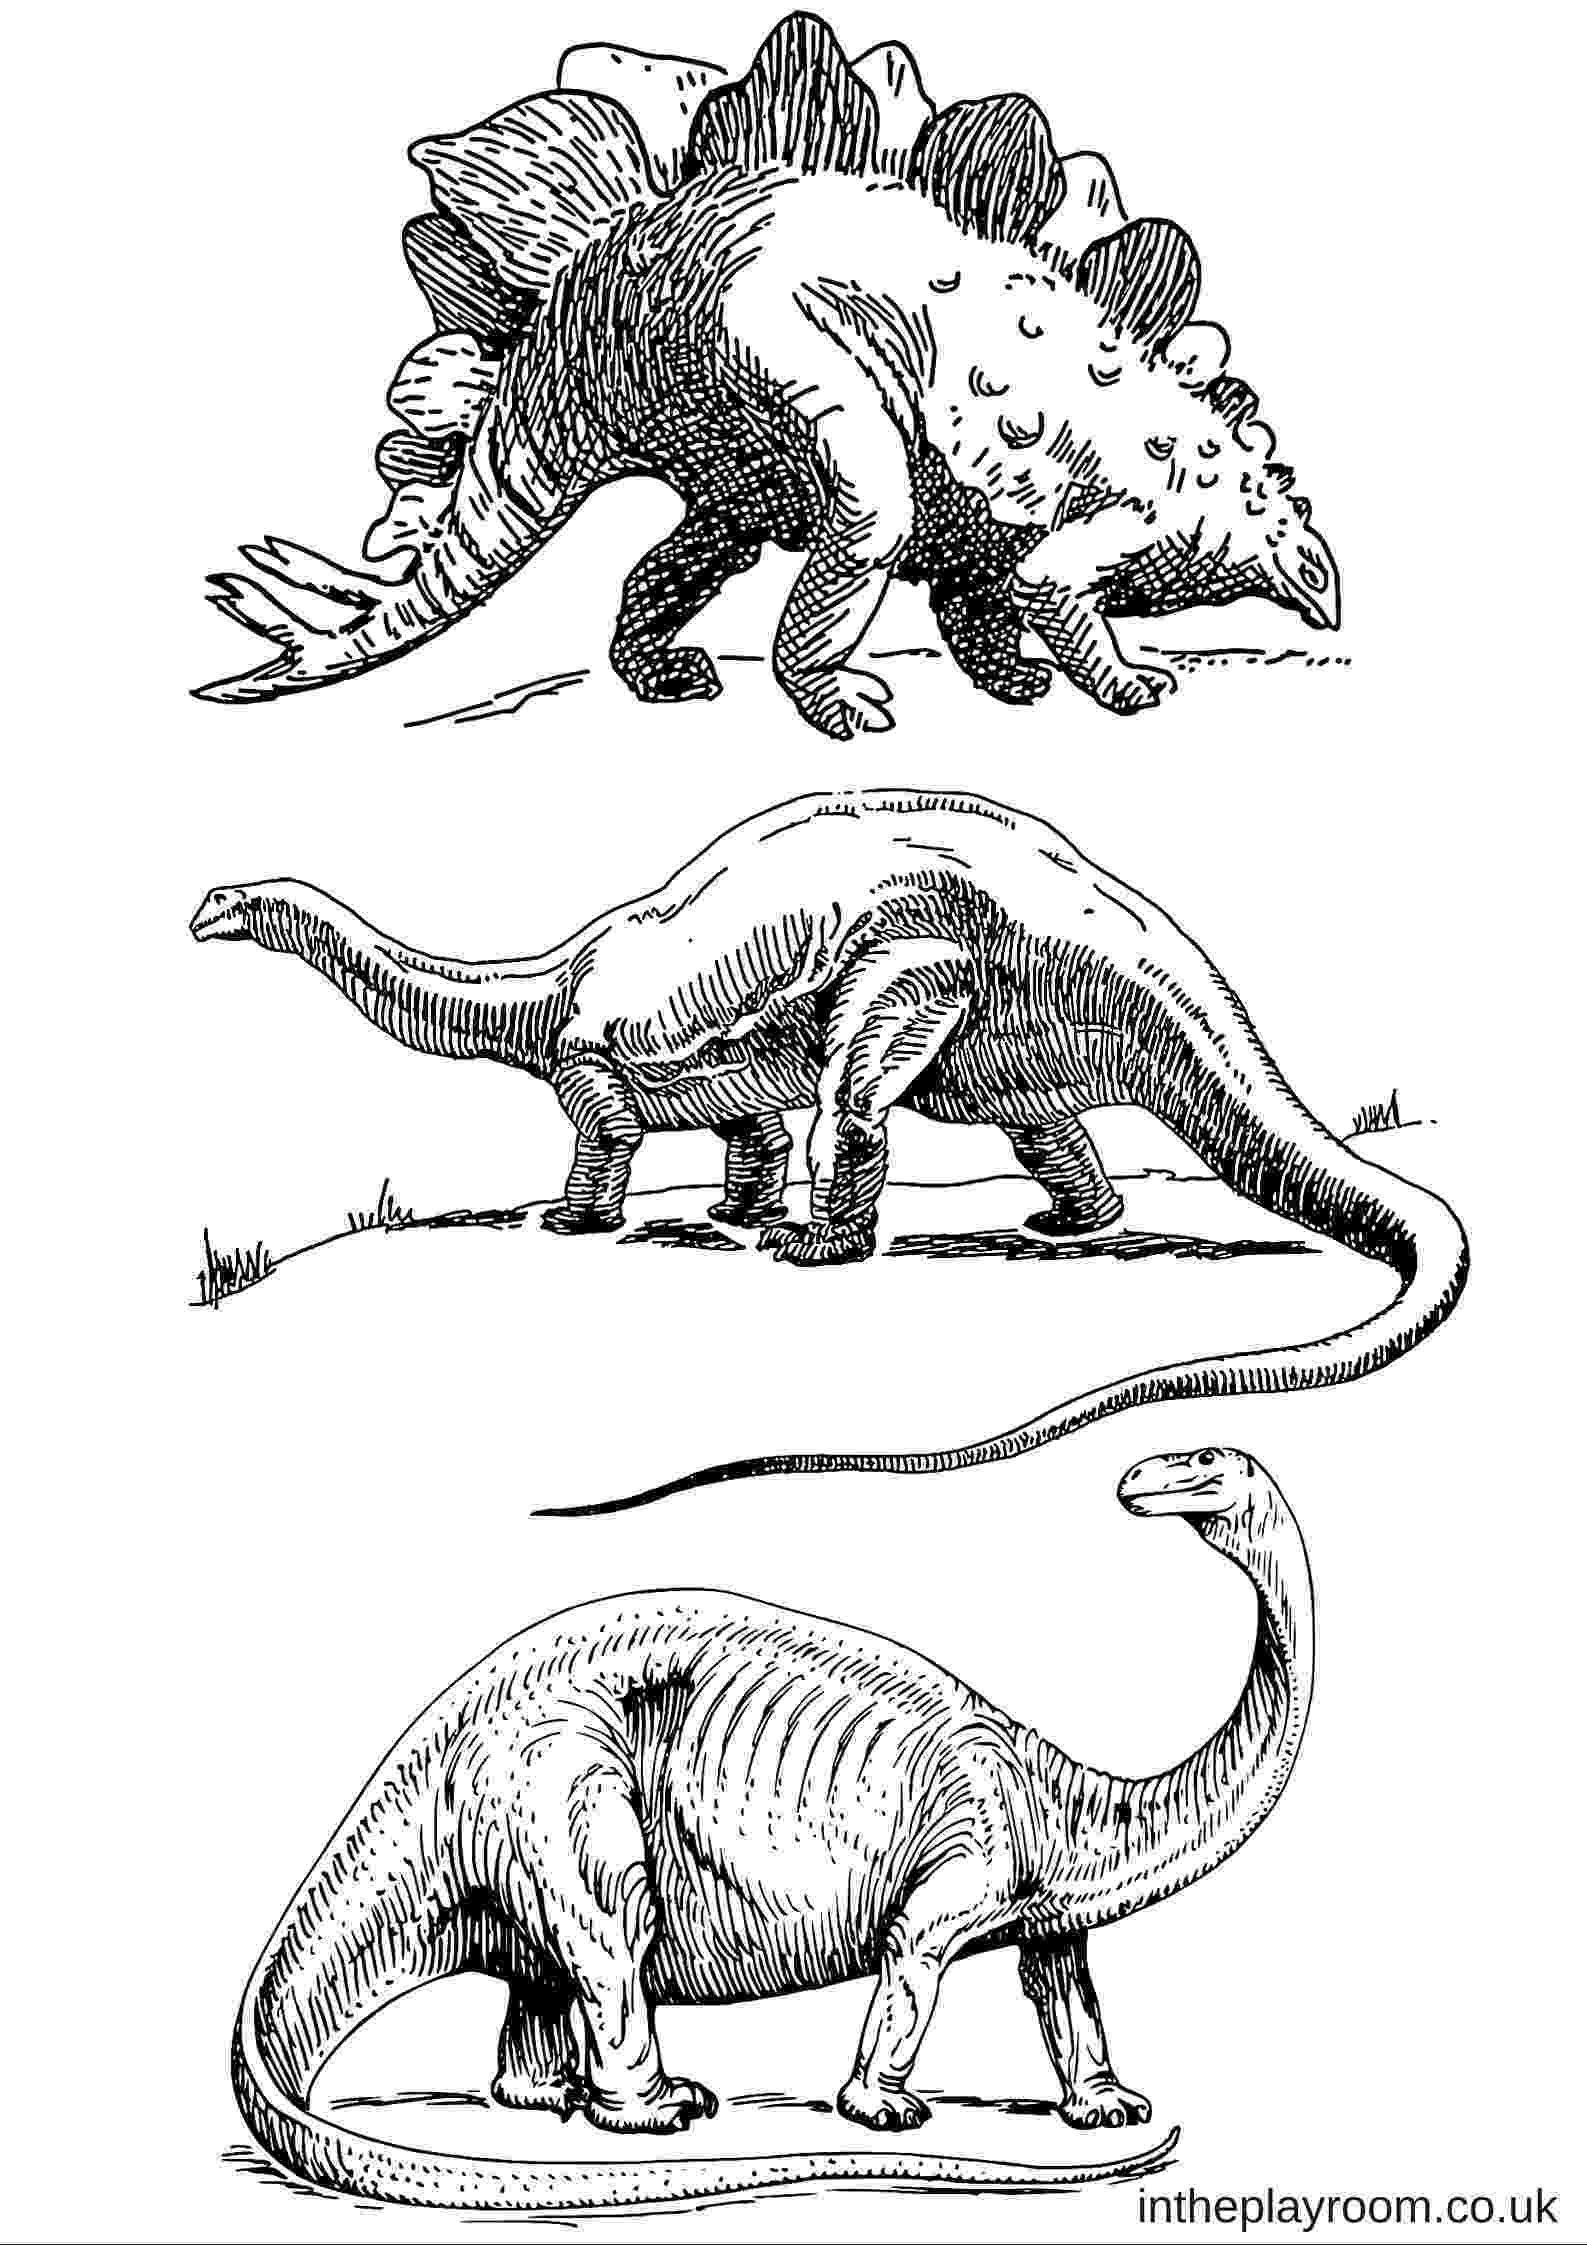 triceratops picture styracosaurus and triceratops coloring page free triceratops picture